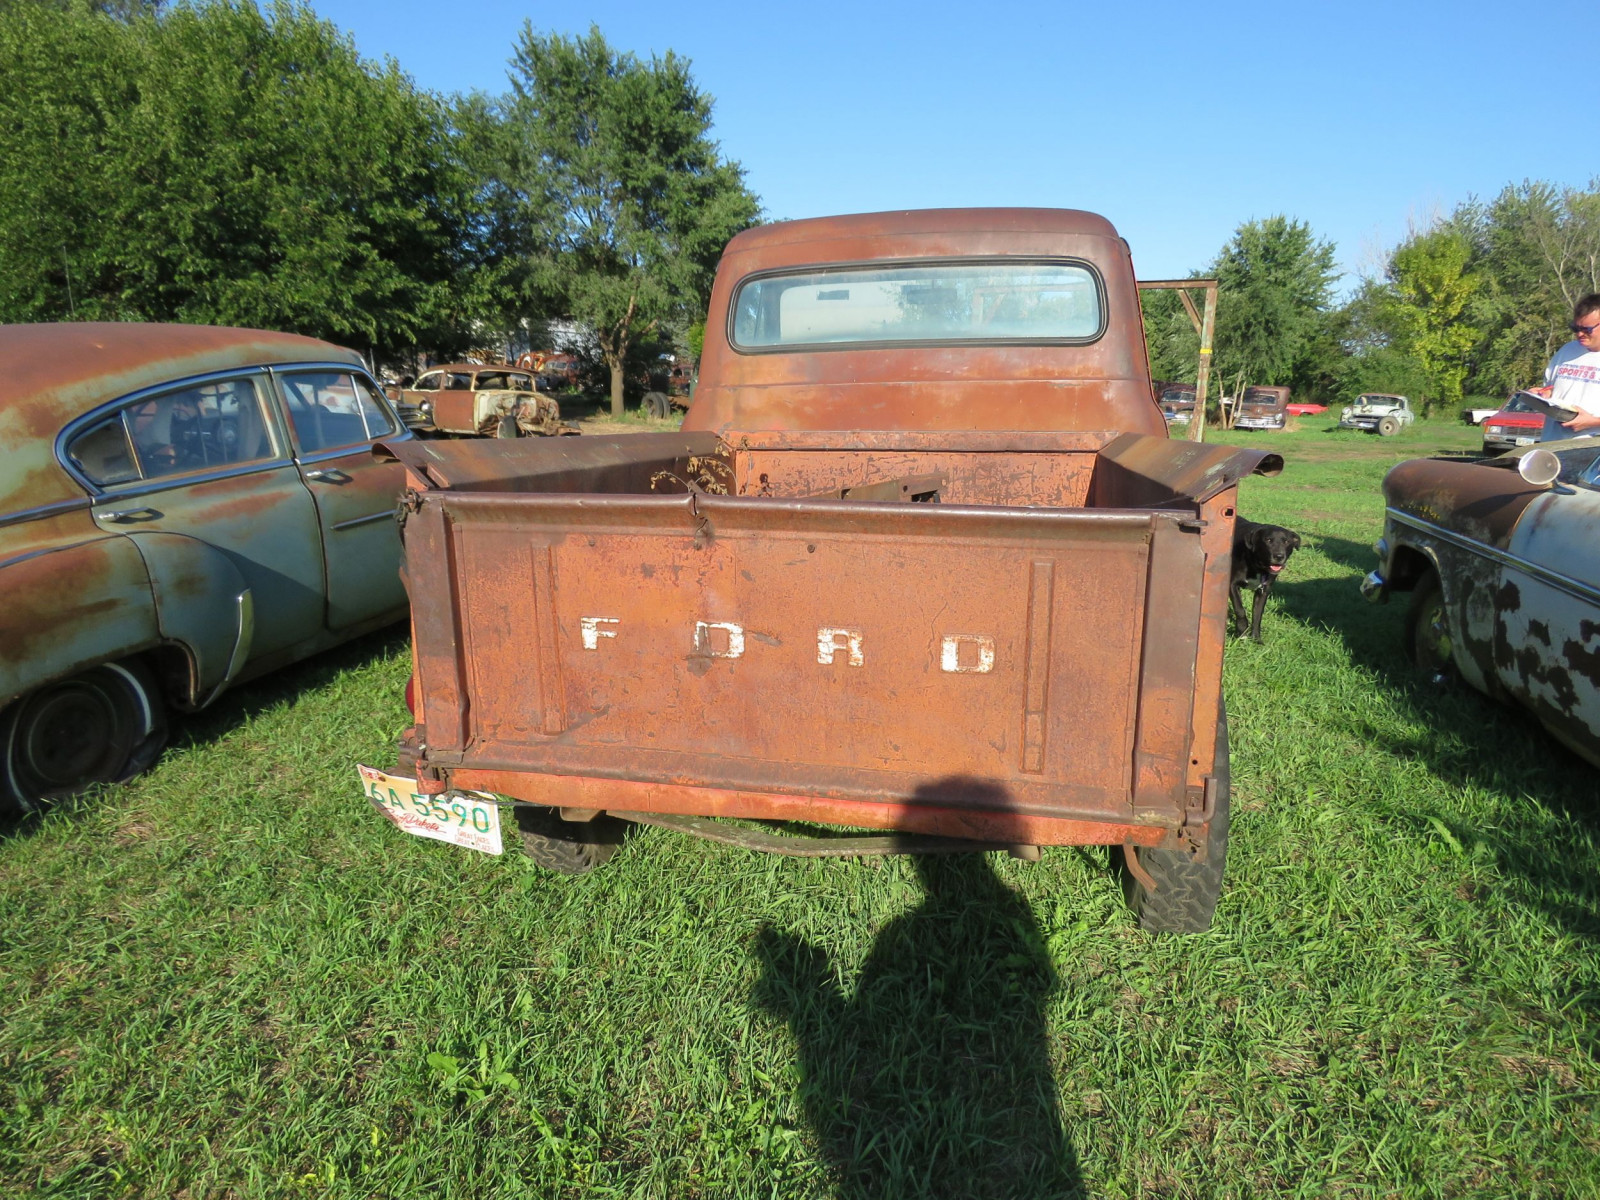 1953 Ford F100 Pickup for Rod or restore - Image 4